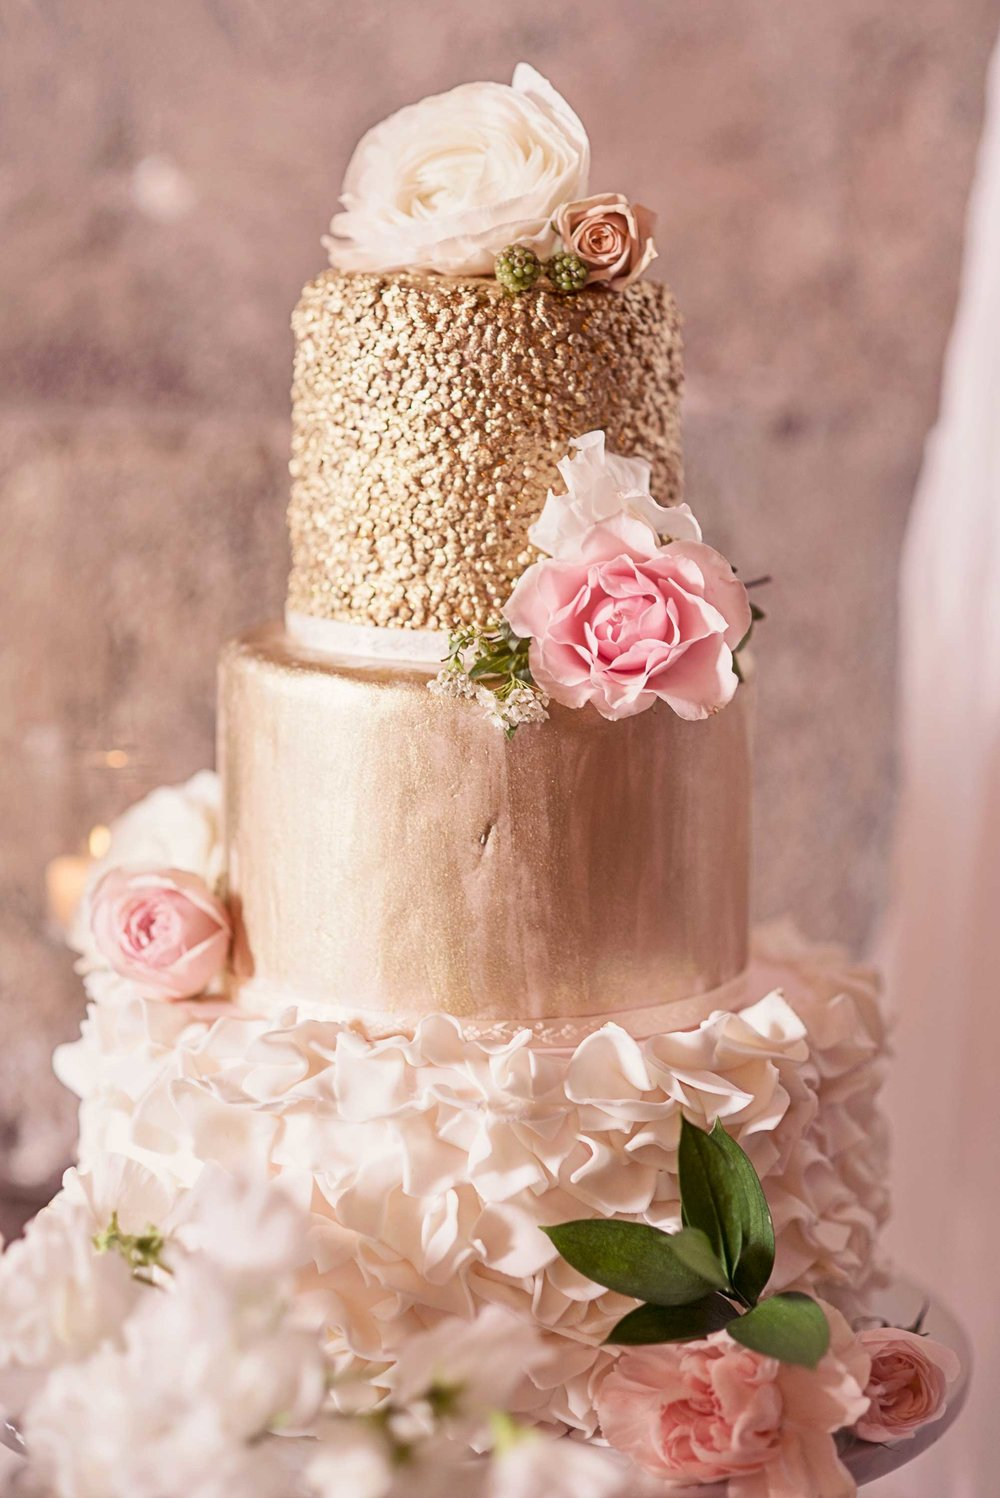 Blush Wedding, Elegant Wedding, Pink Wedding, Montana Wedding Photographer, Blush Wedding Cake